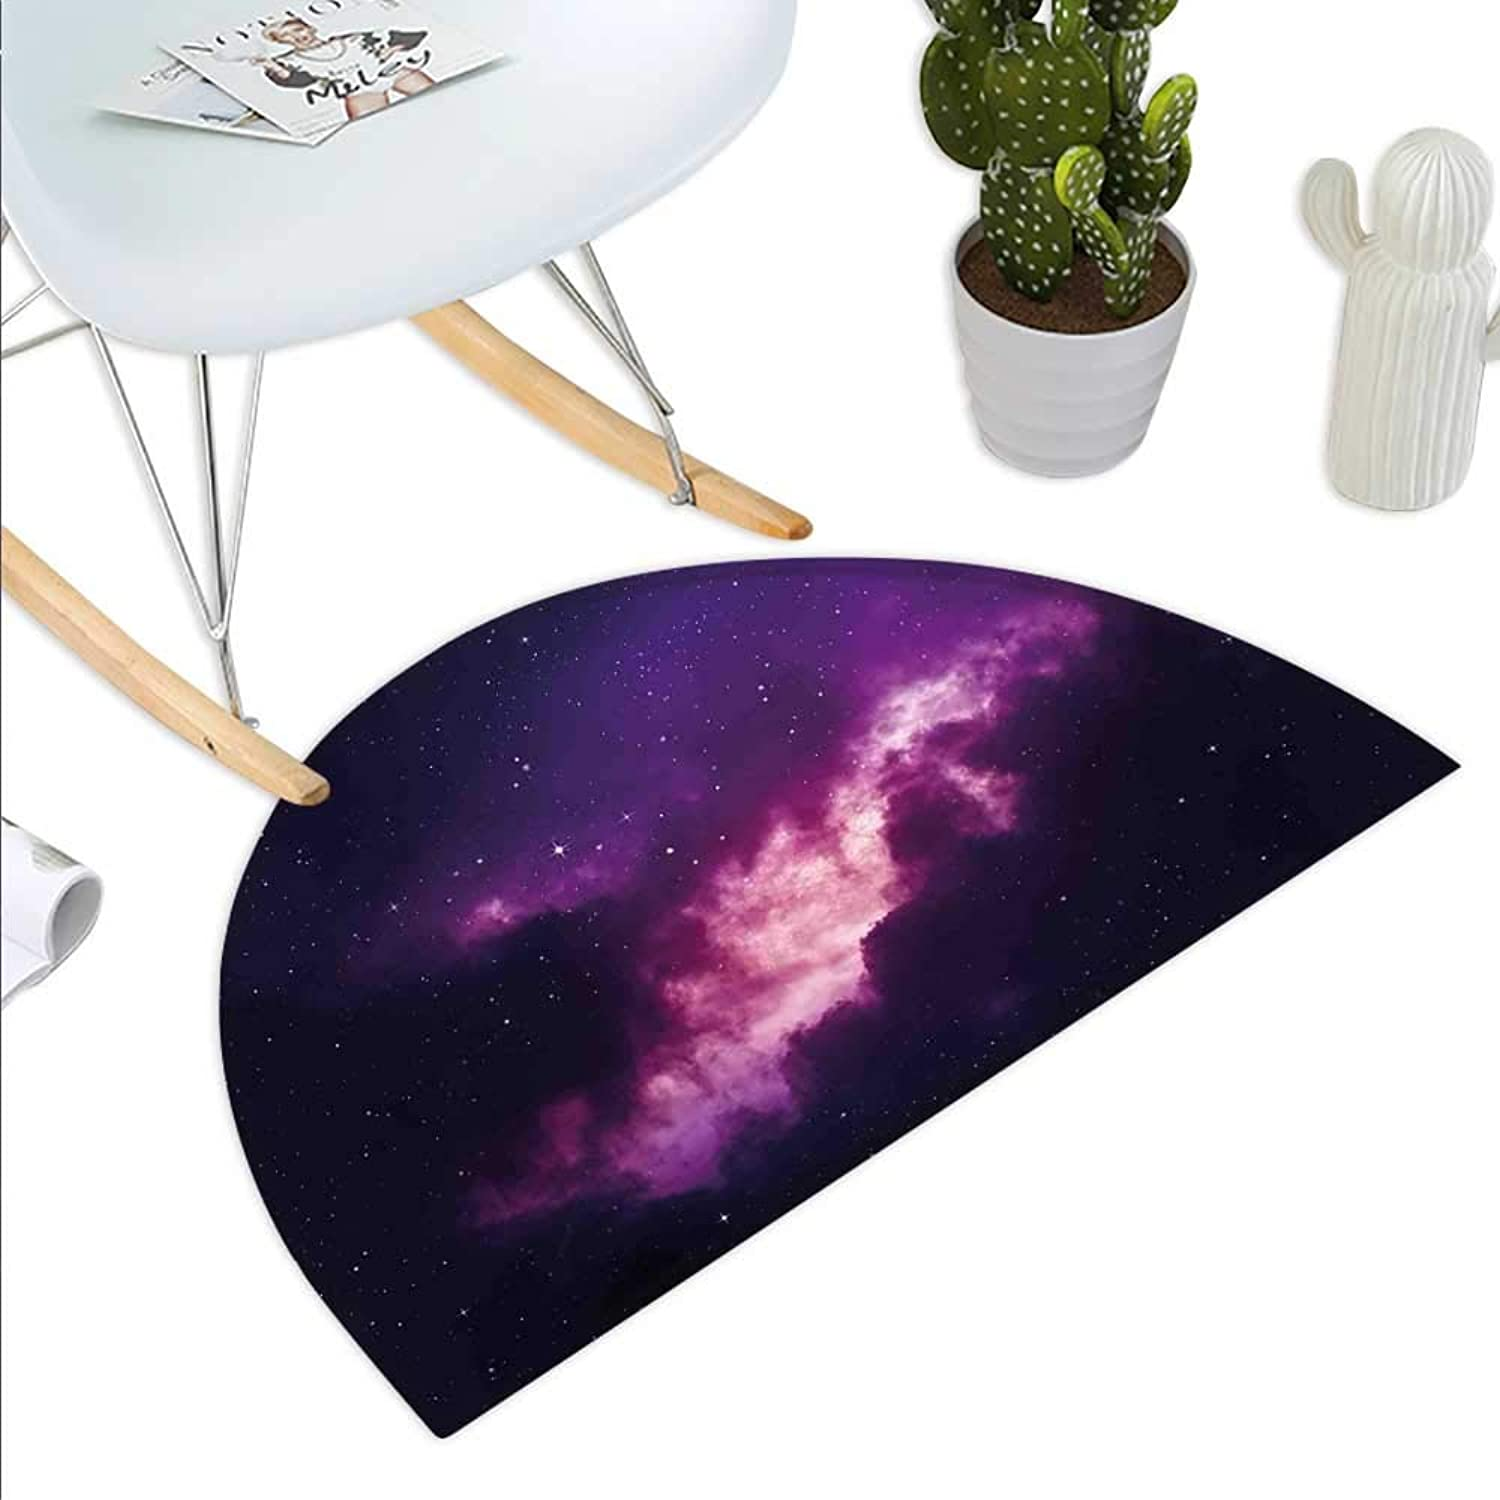 Outer Space Semicircle Doormat Stars in The Dark Night Sky Comet Constellation Deep Space Years Themed Artsy Image Halfmoon doormats H 23.6  xD 35.4  Purple